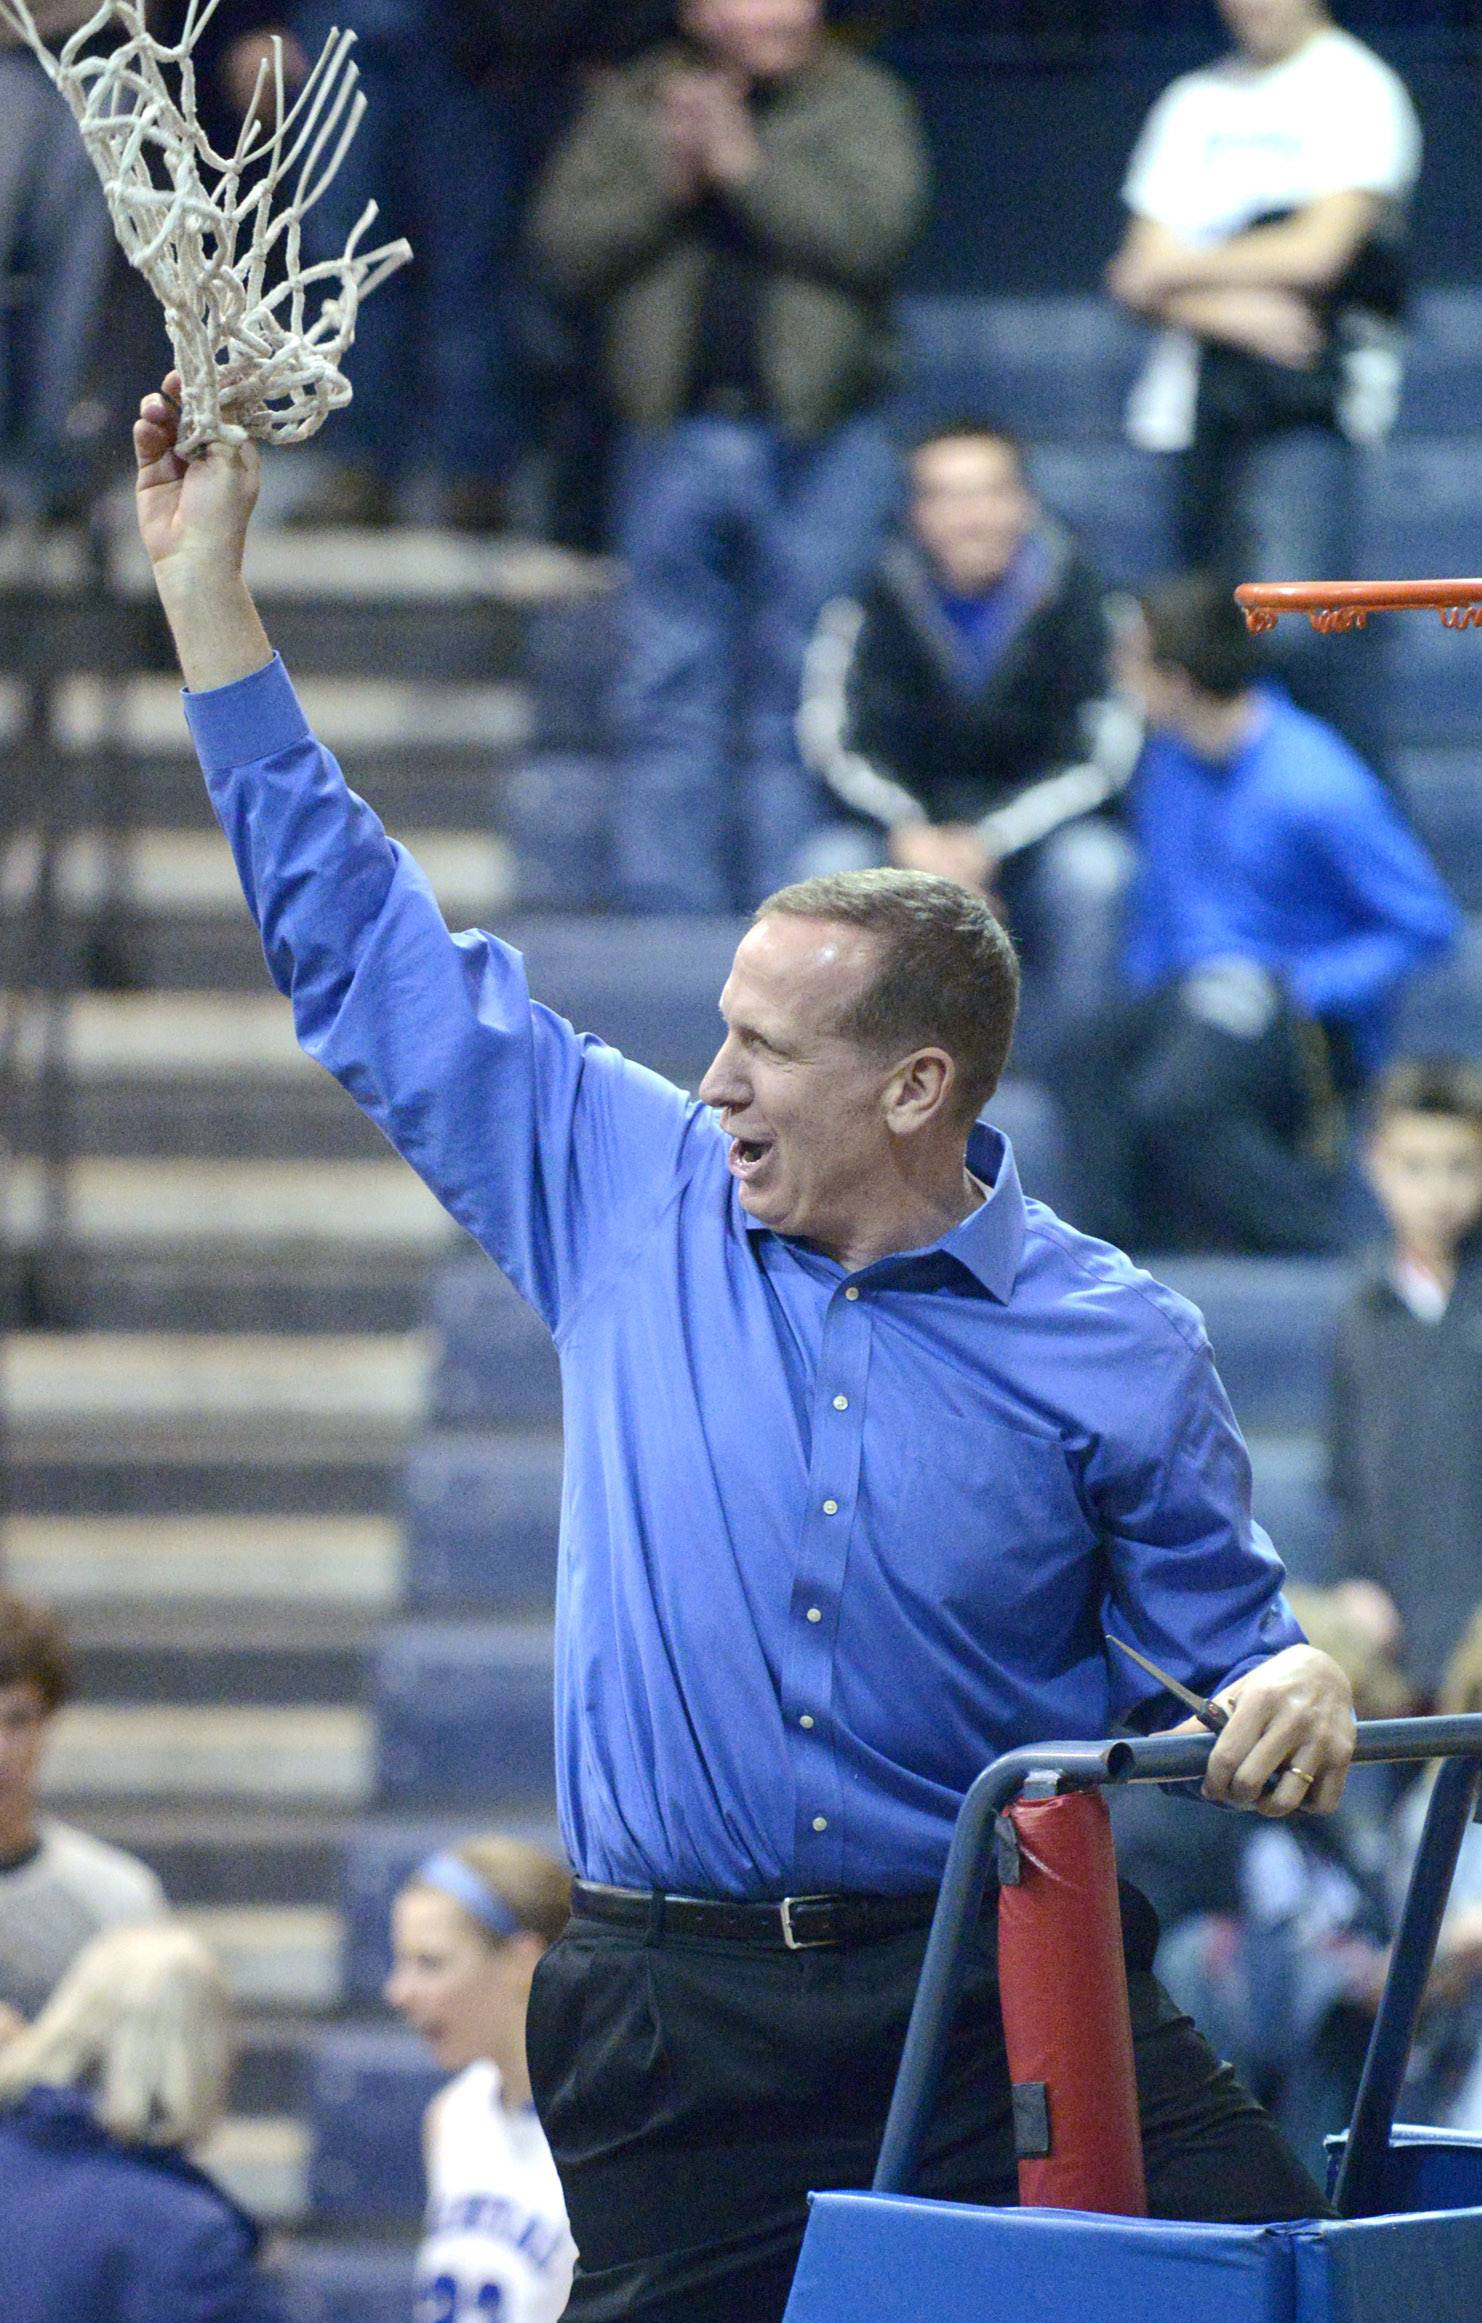 Burlington Central head coach Mark Smith twirls the net in the air before tossing it to his team after the Rockets' victory over St. Edward in the Class 3A regional championship game on Saturday in Aurora.